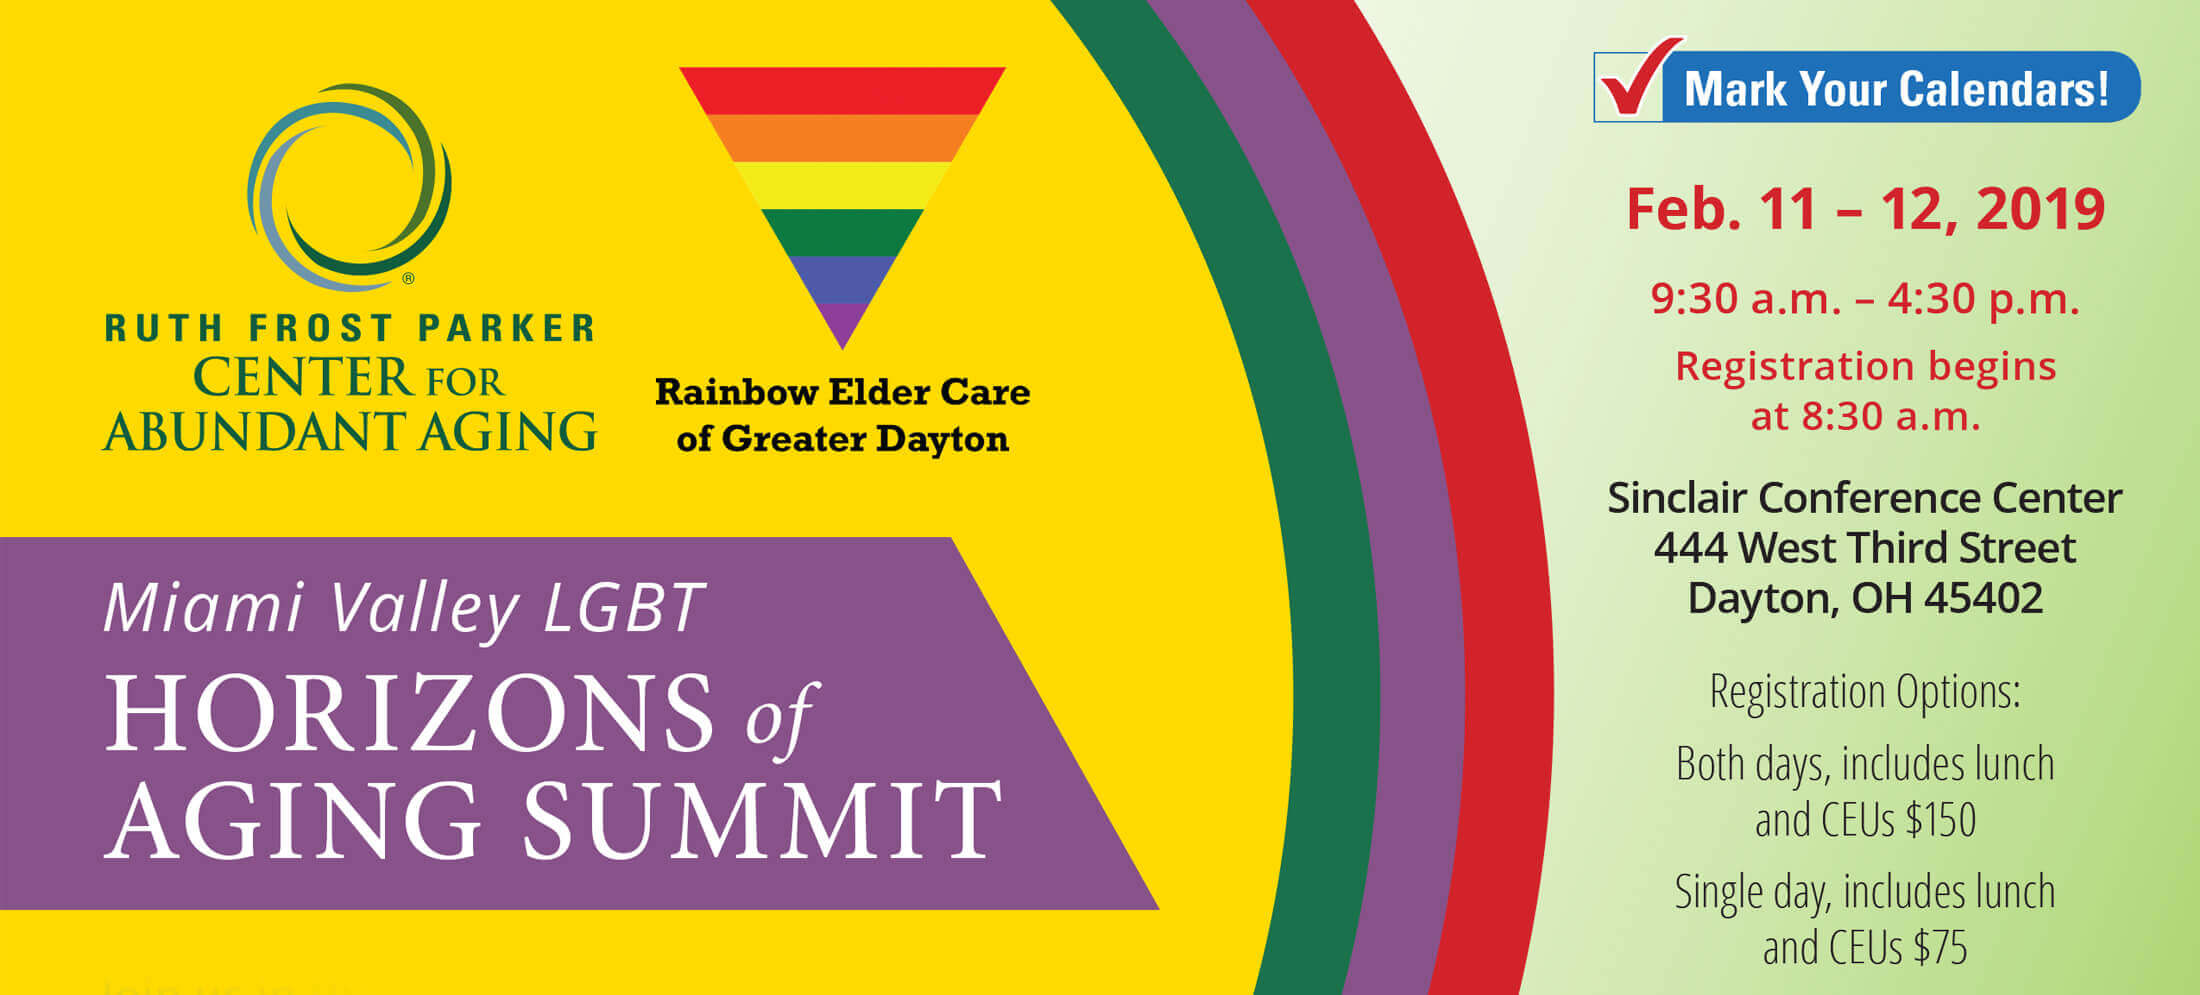 Miami Valley LGBT - HORIZONS of AGING SUMMIT